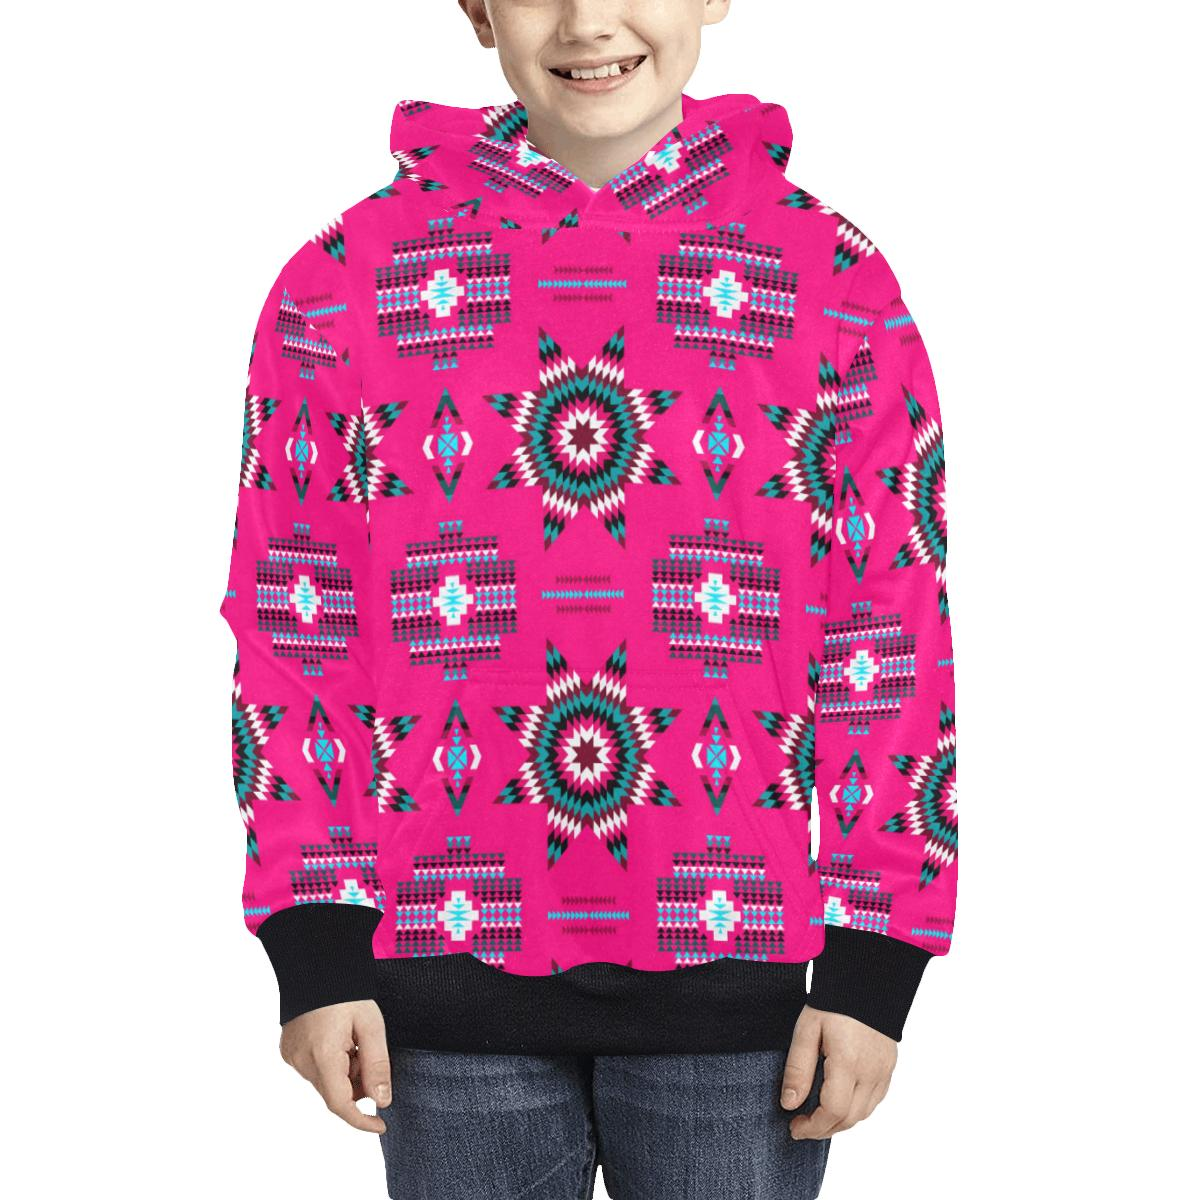 Rising Star Strawberry Moon Kids' All Over Print Hoodie (Model H38) Kids' AOP Hoodie (H38) e-joyer